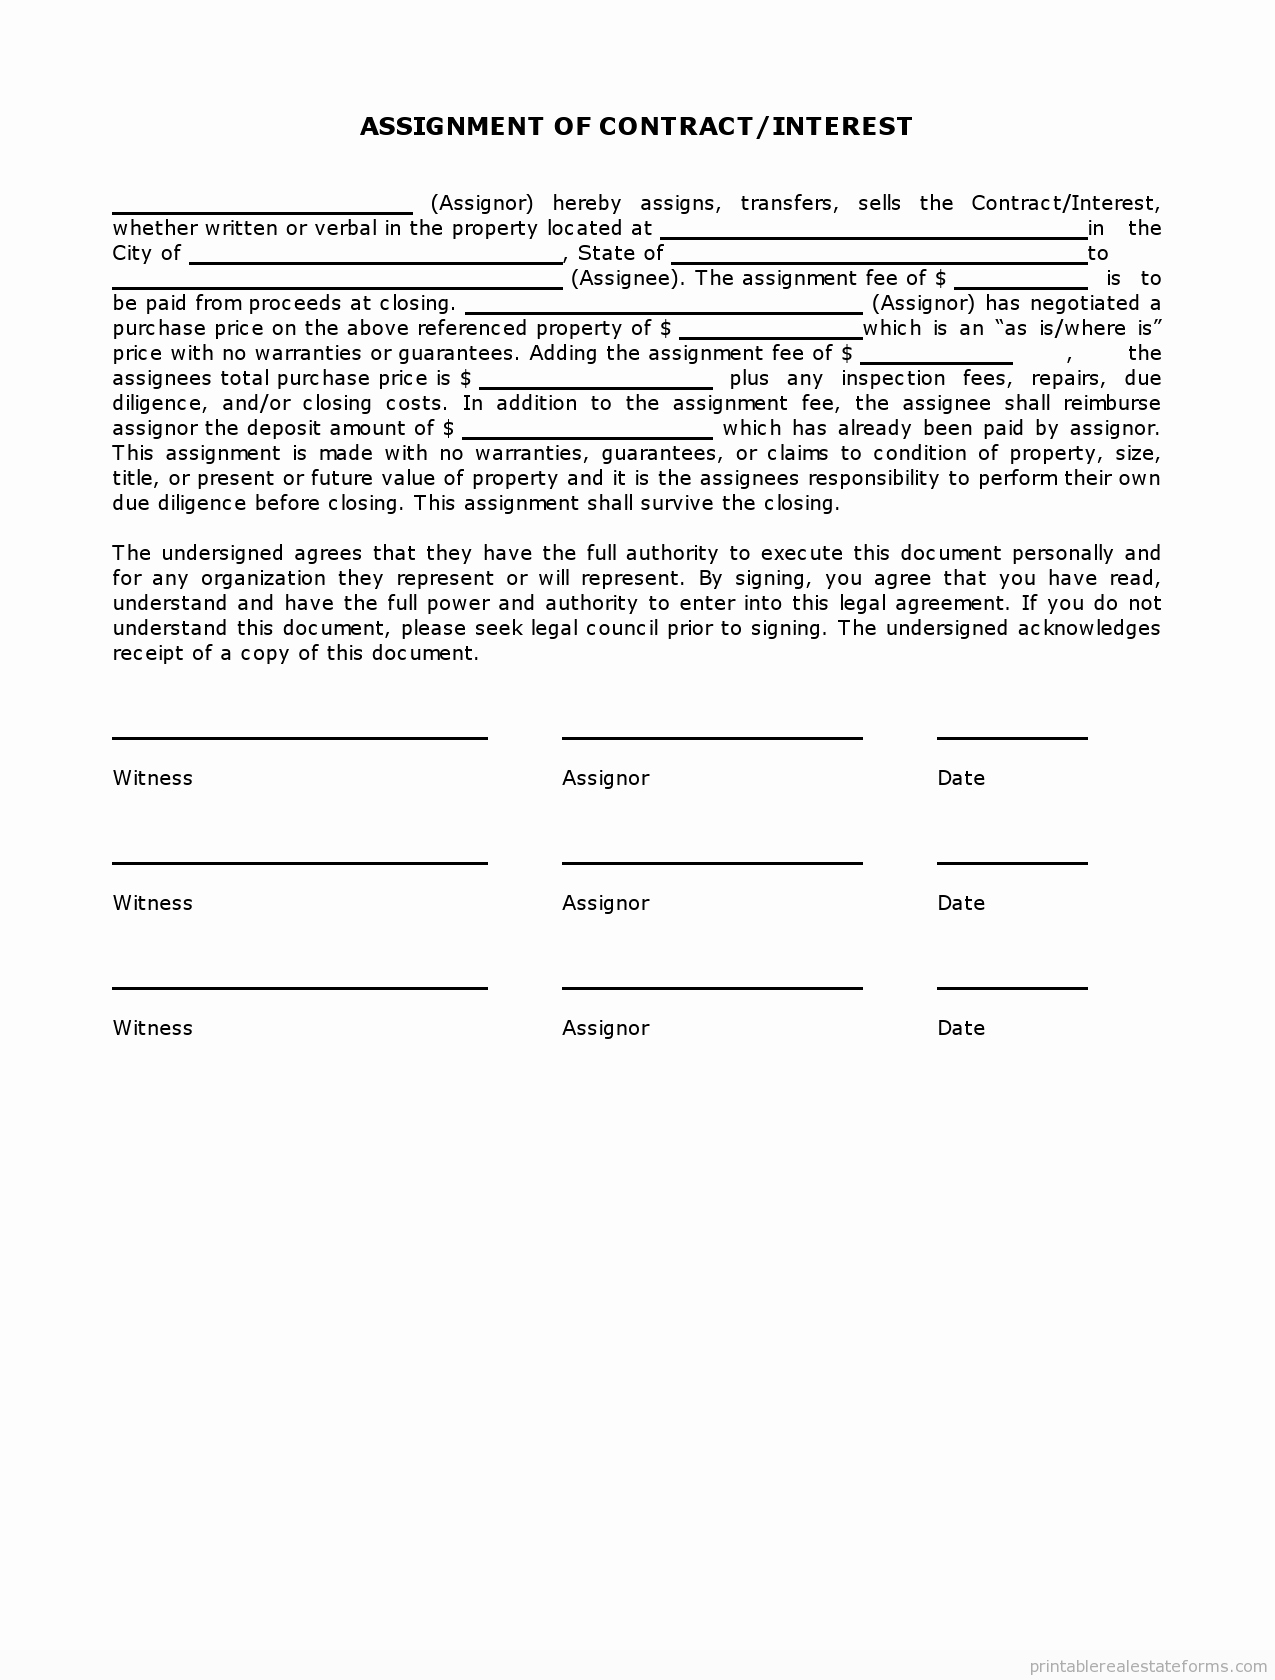 Simple Term Sheet Template Awesome Sample Printable Simple assignment Of Contract Interest